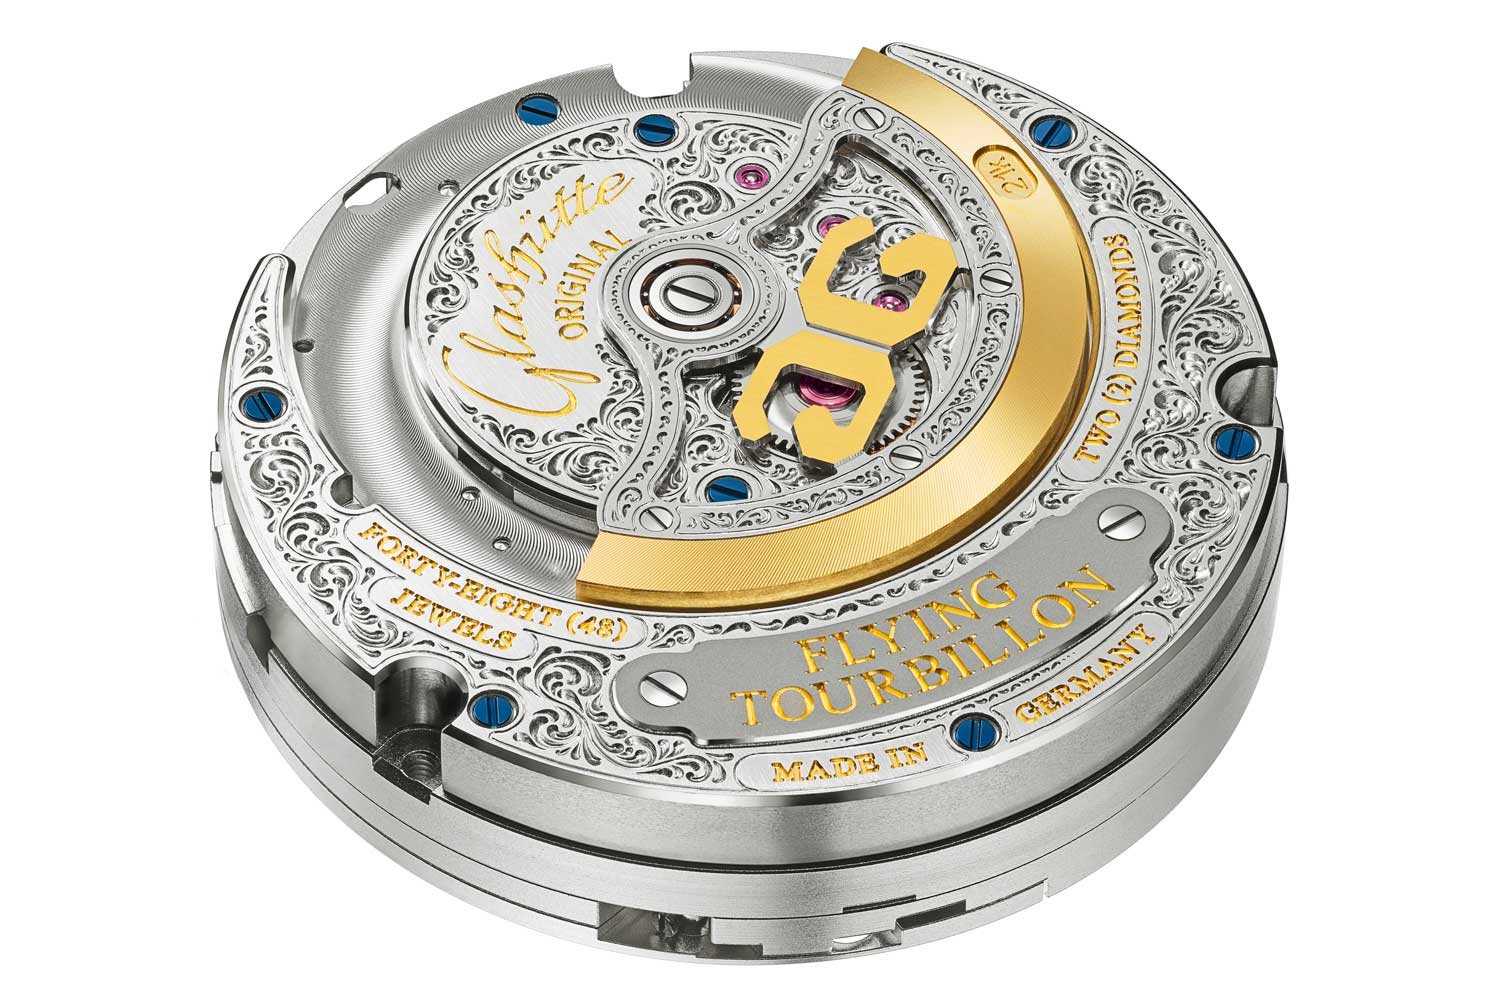 Elaborate engravings adorn the back as well, the automatic movement Calibre 93-12 revealed through the sapphire crystal case back.